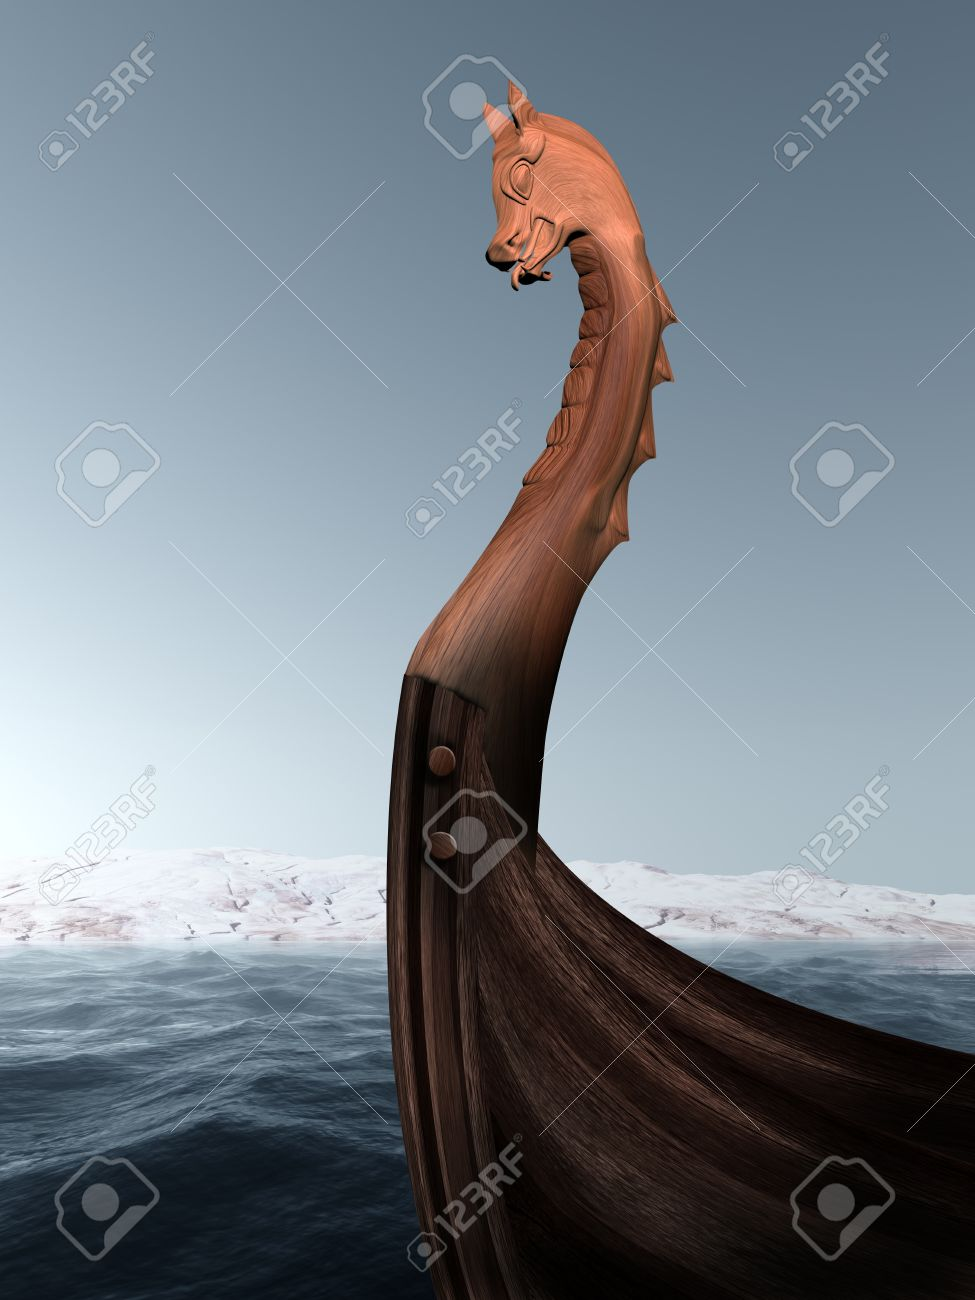 Illustration Of An Ancient Wooden Figurehead On A Viking Longboat Pinterest Ship And Sailing Ships